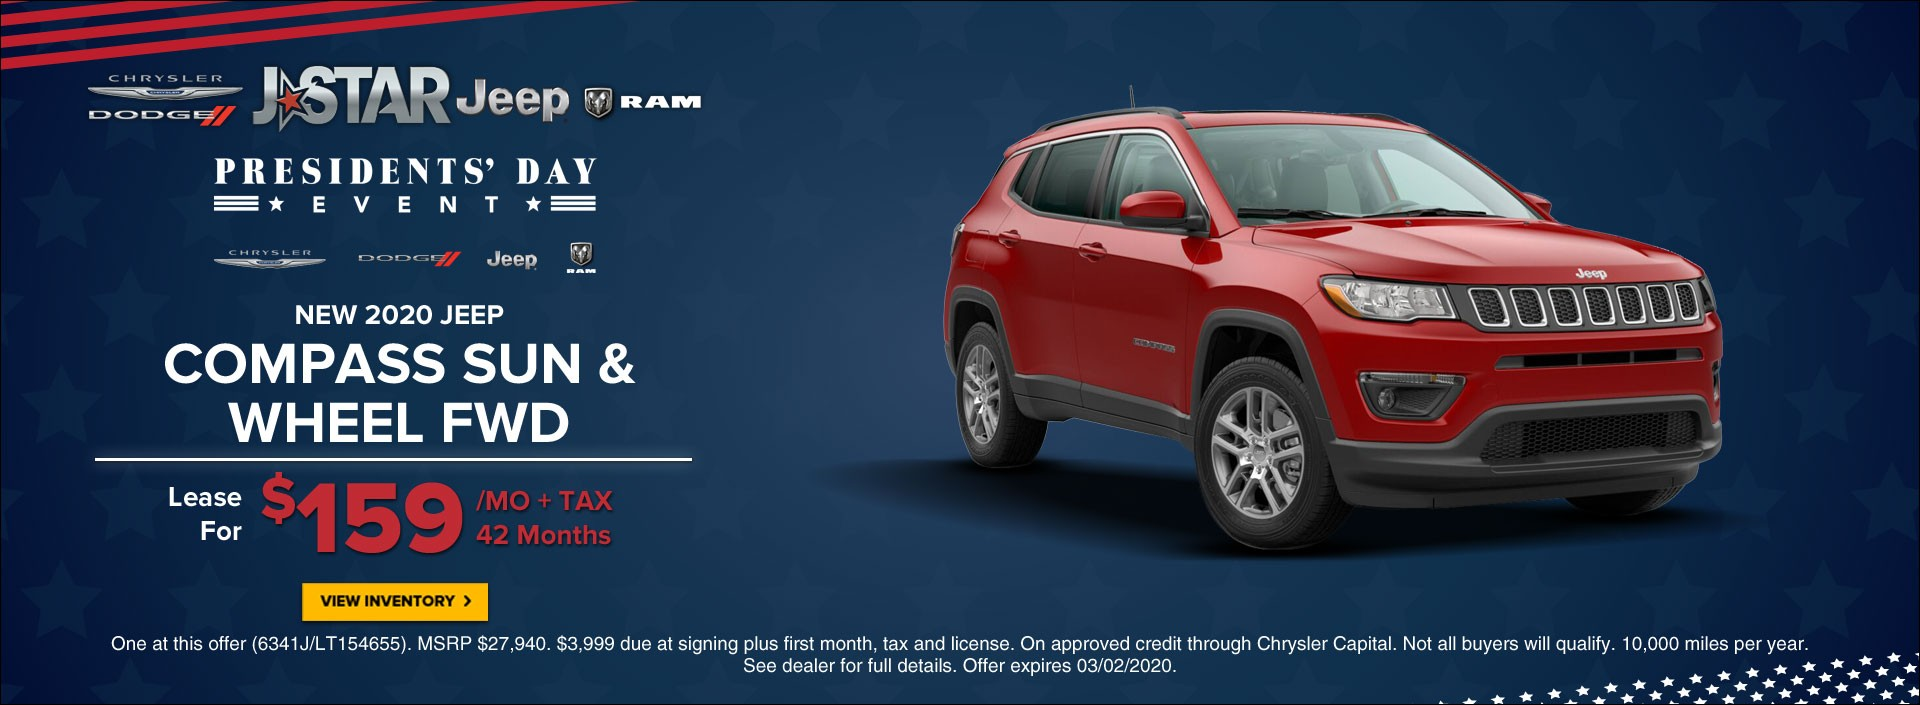 2020 Jeep Compass Sun & Wheel Fwd Lease for $159 per month + tax for 42 months at President's Day Sales Event